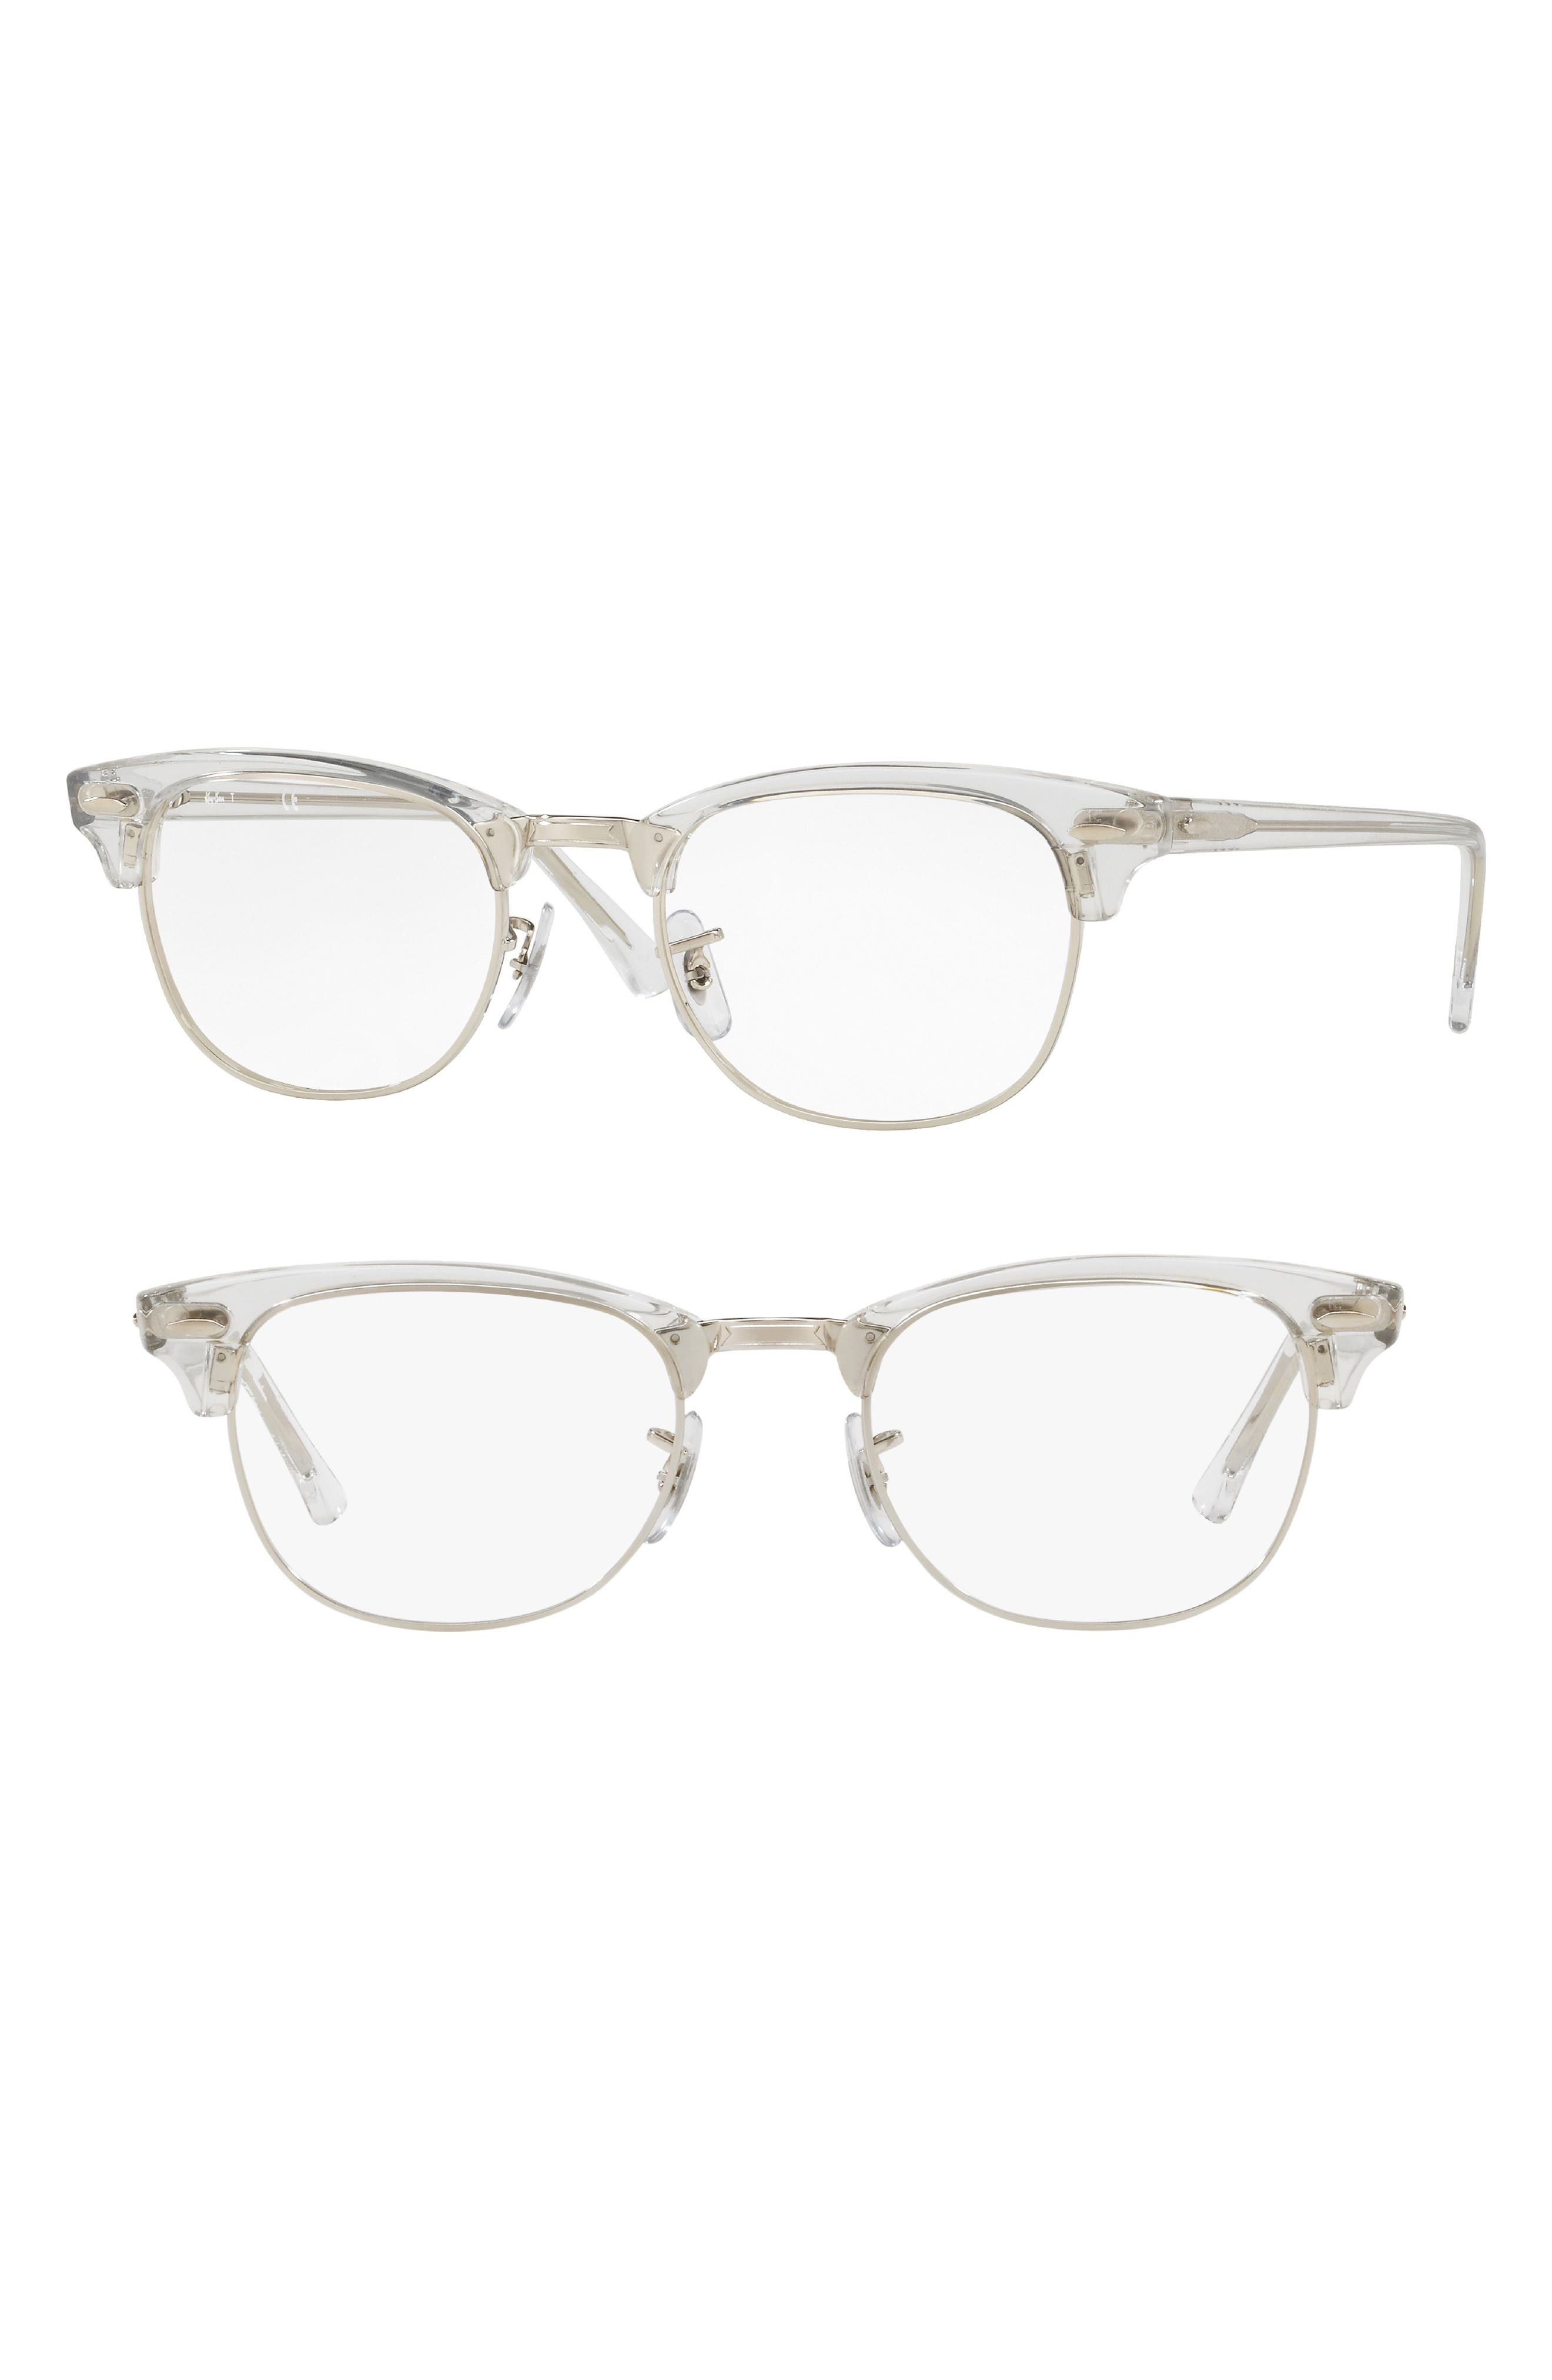 Ray-Ban 5154 51mm Optical Glasses